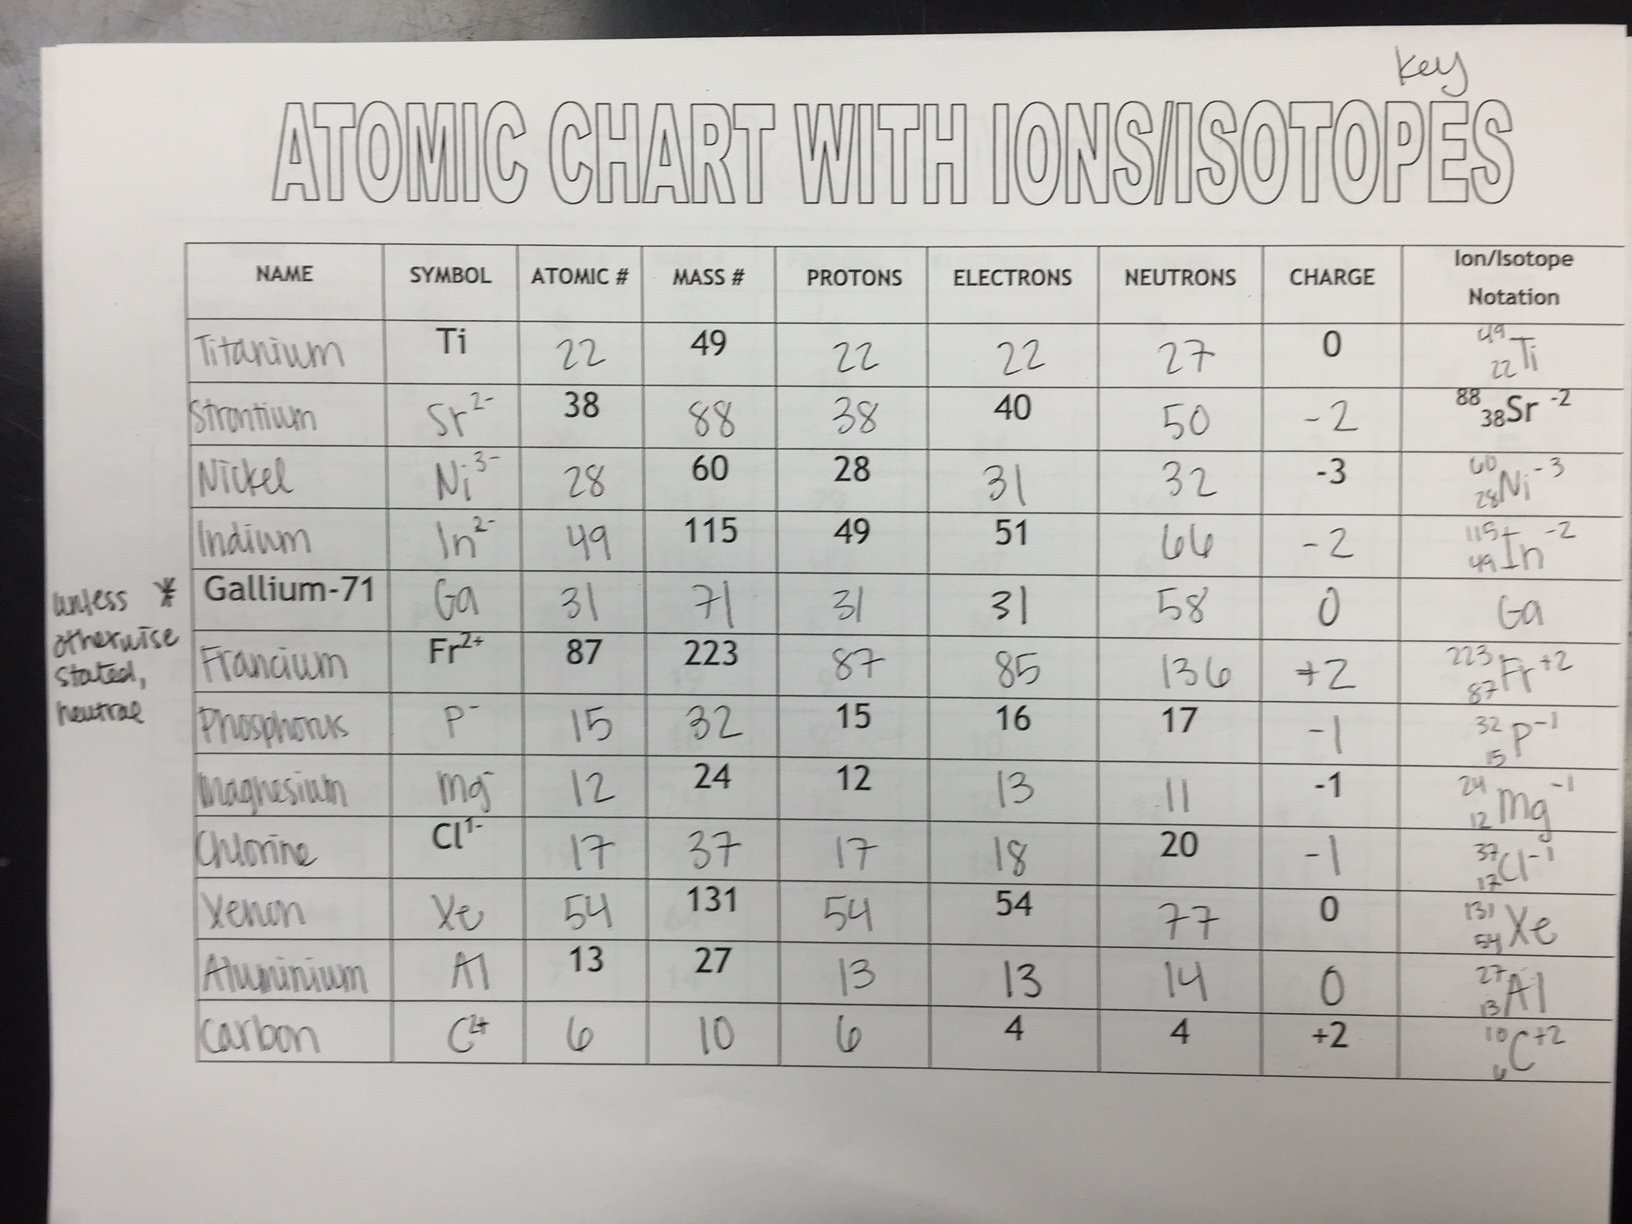 Atoms Ions And Isotopes Worksheet Answers Third Grade Math Within Isotopes Ions And Atoms Worksheet 1 Answers